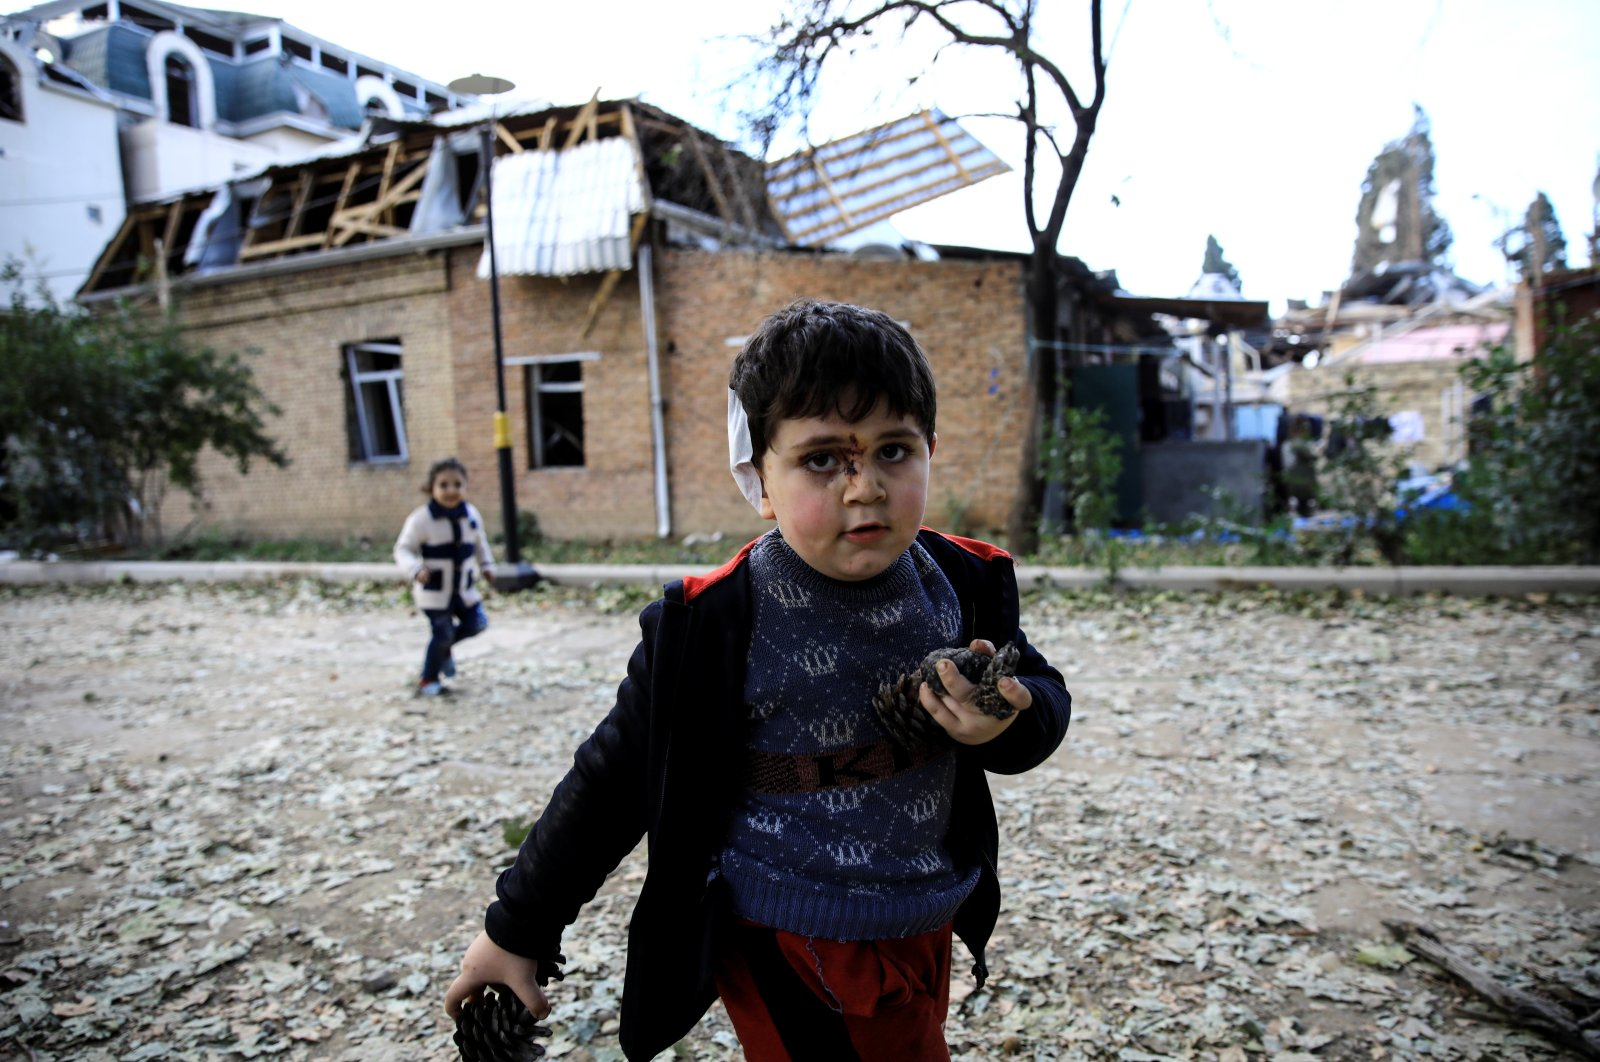 5-year-old Bahtiyar Elnur, who was injured in an Armenian attack, plays with his sister Sehla, in the city of Ganja, Azerbaijan Oct.11, 2020. (Reuters Photo)